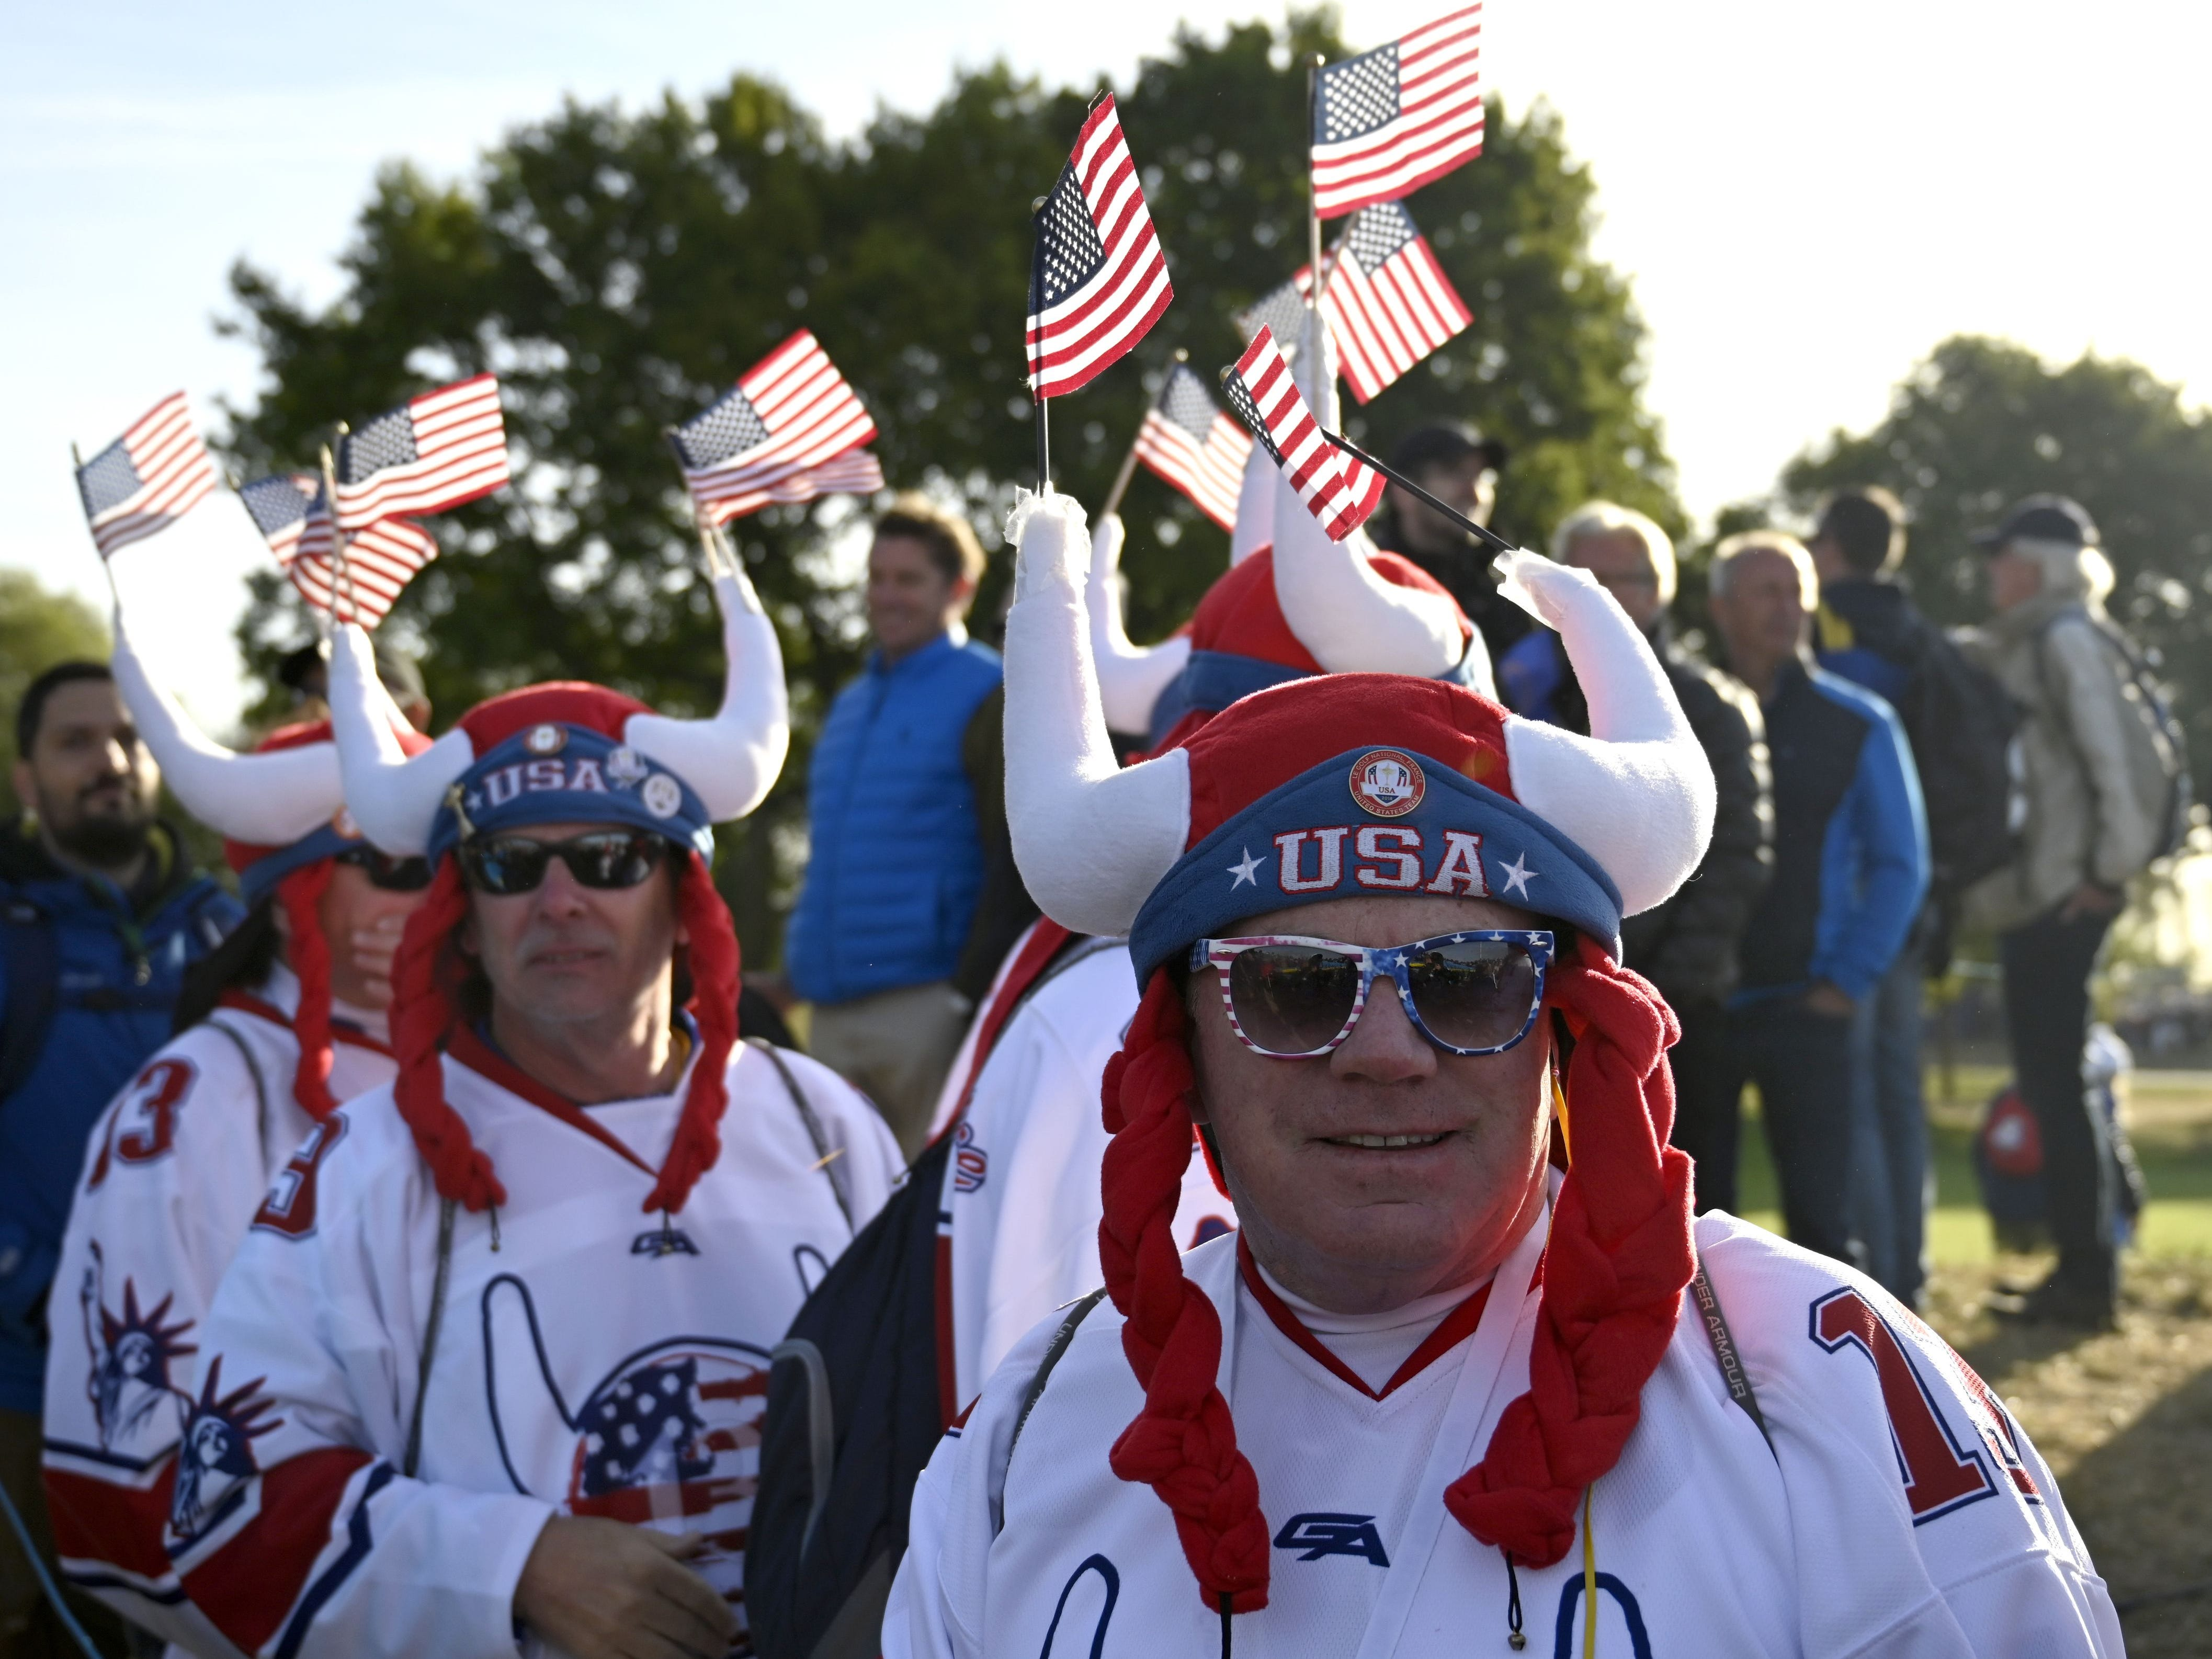 Team USA fans were in full force on Saturday during the early fourball matches at the Ryder Cup.